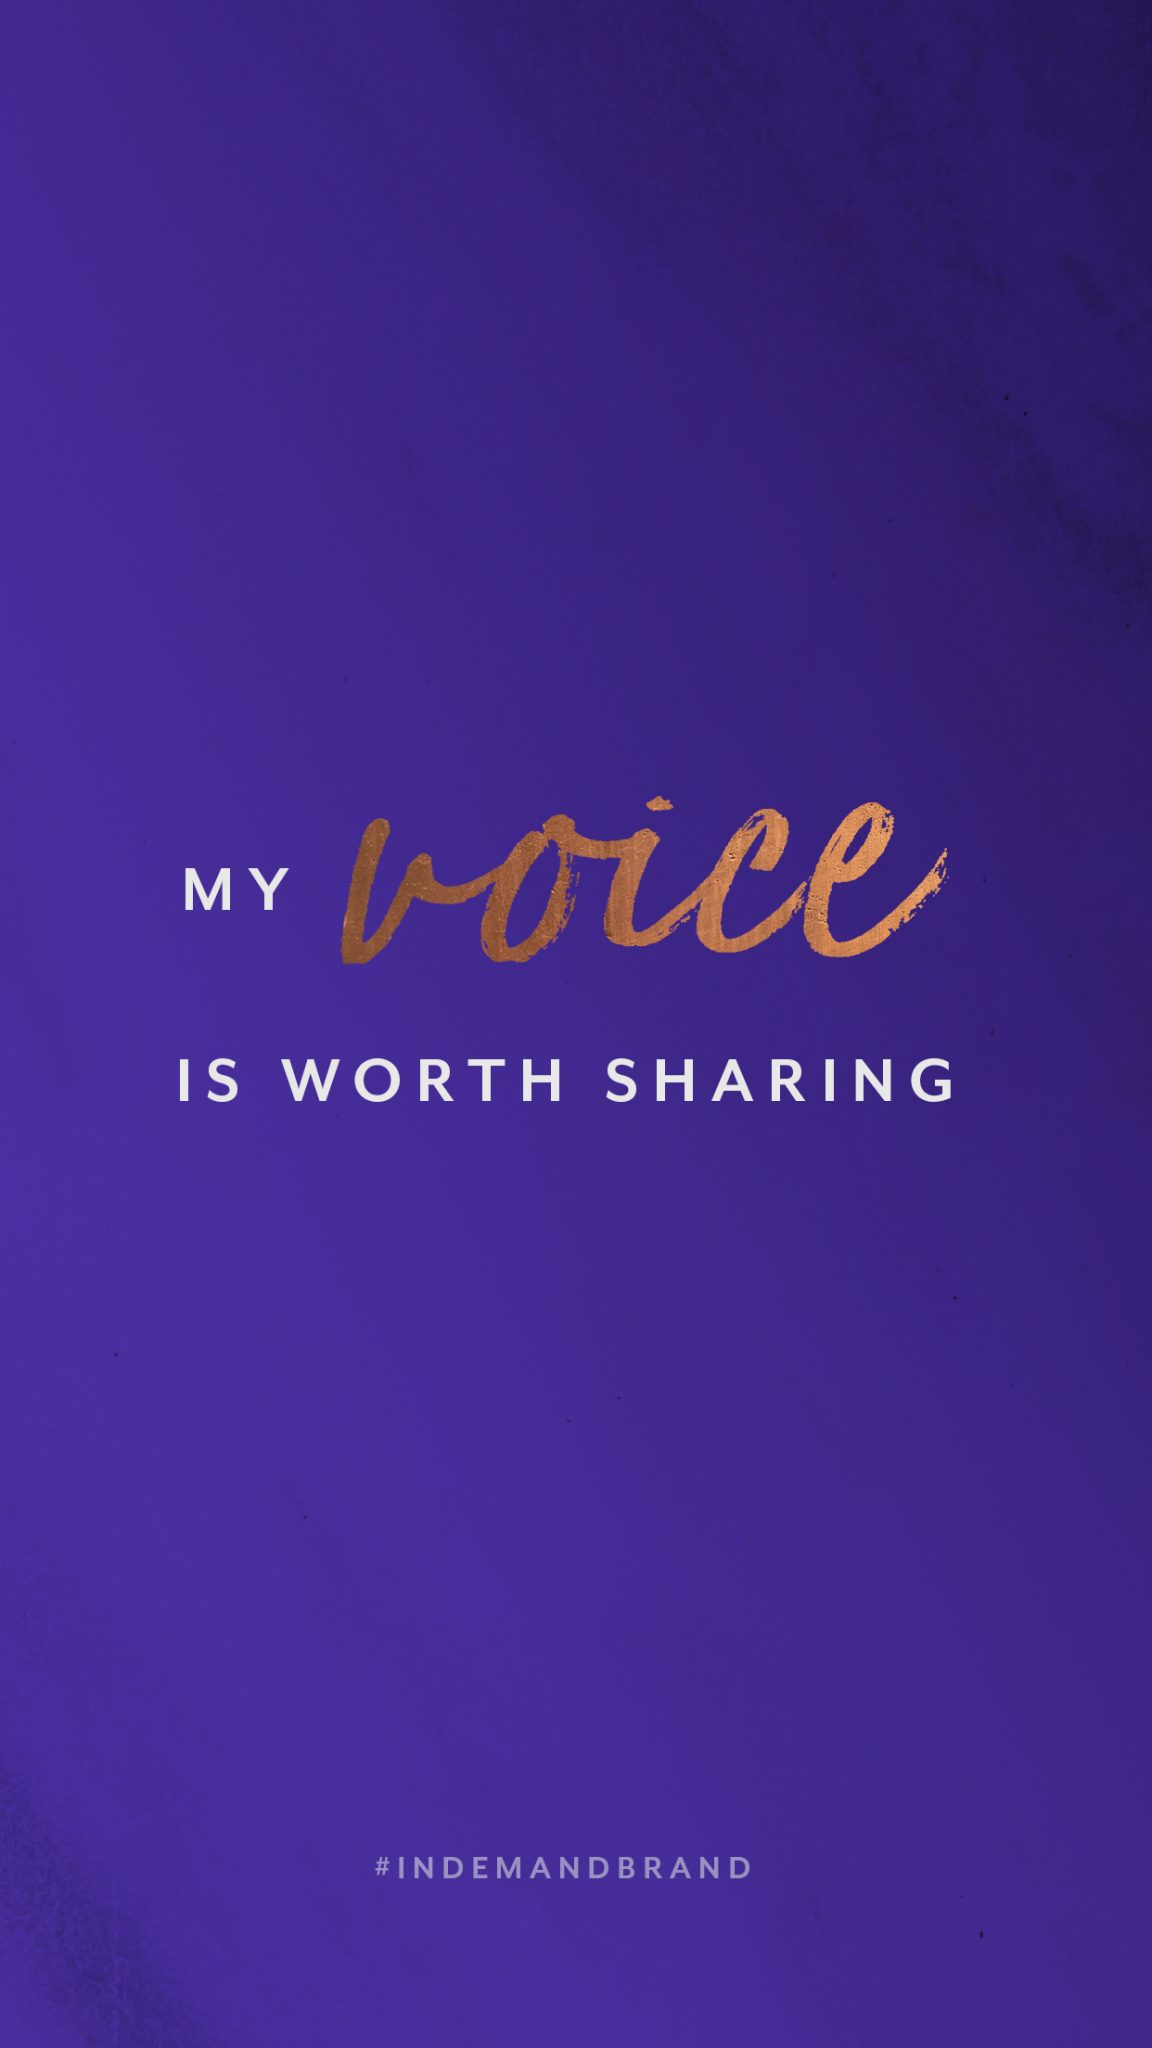 My voice is worth sharing. #InDemandBrand